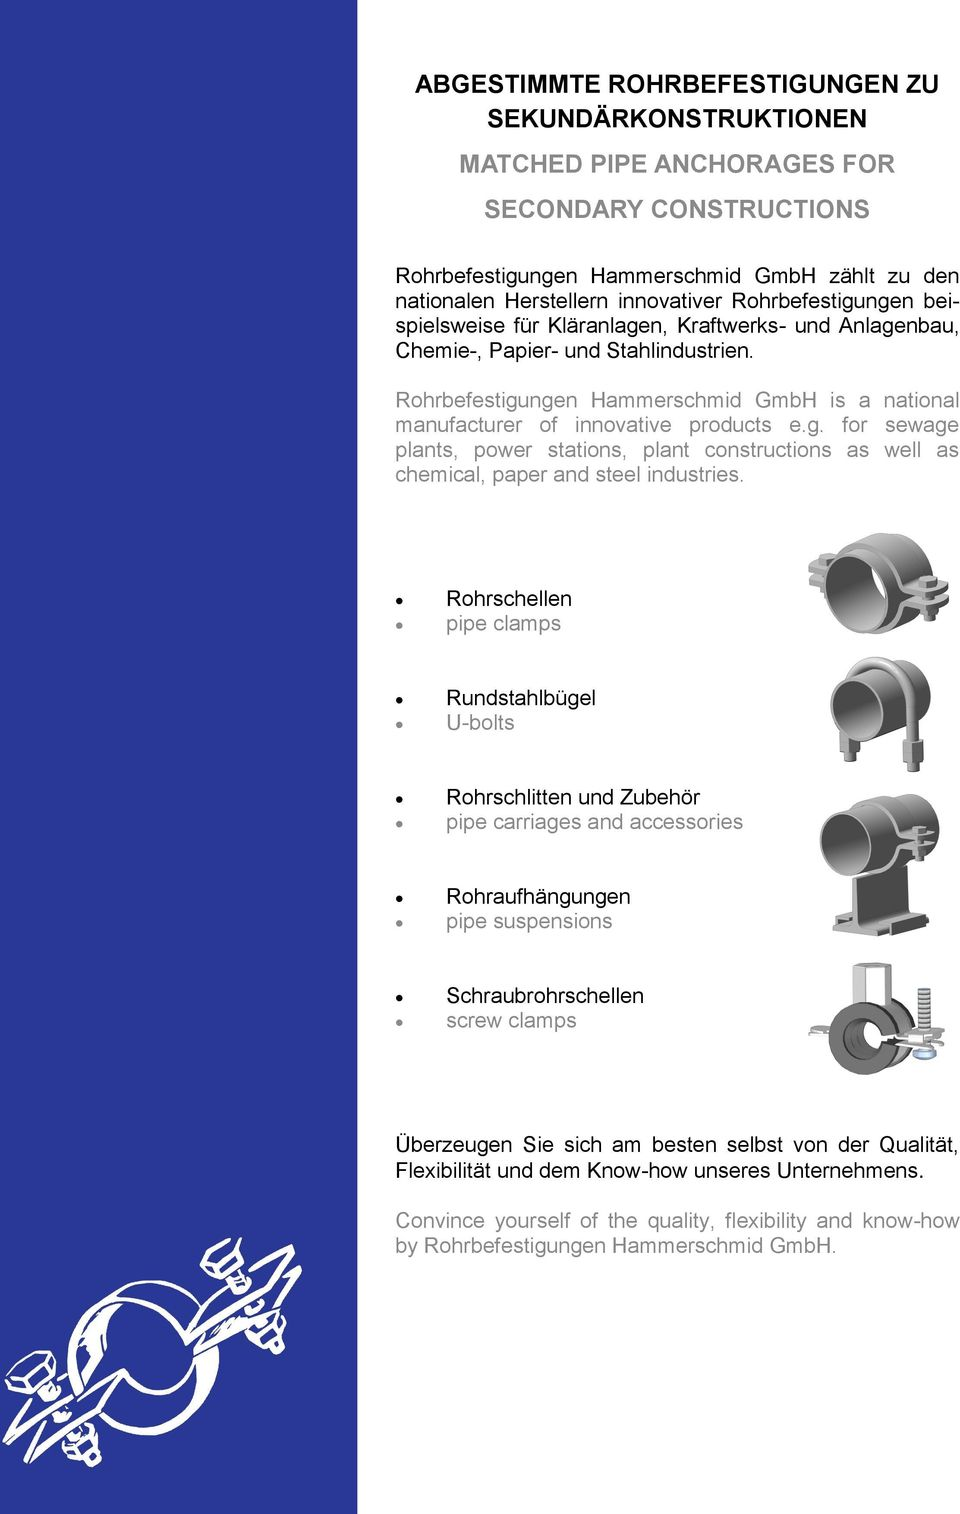 Rohrbefestigungen Hammerschmid GmbH is a national manufacturer of innovative products e.g. for sewage plants, power stations, plant constructions as well as chemical, paper and steel industries.